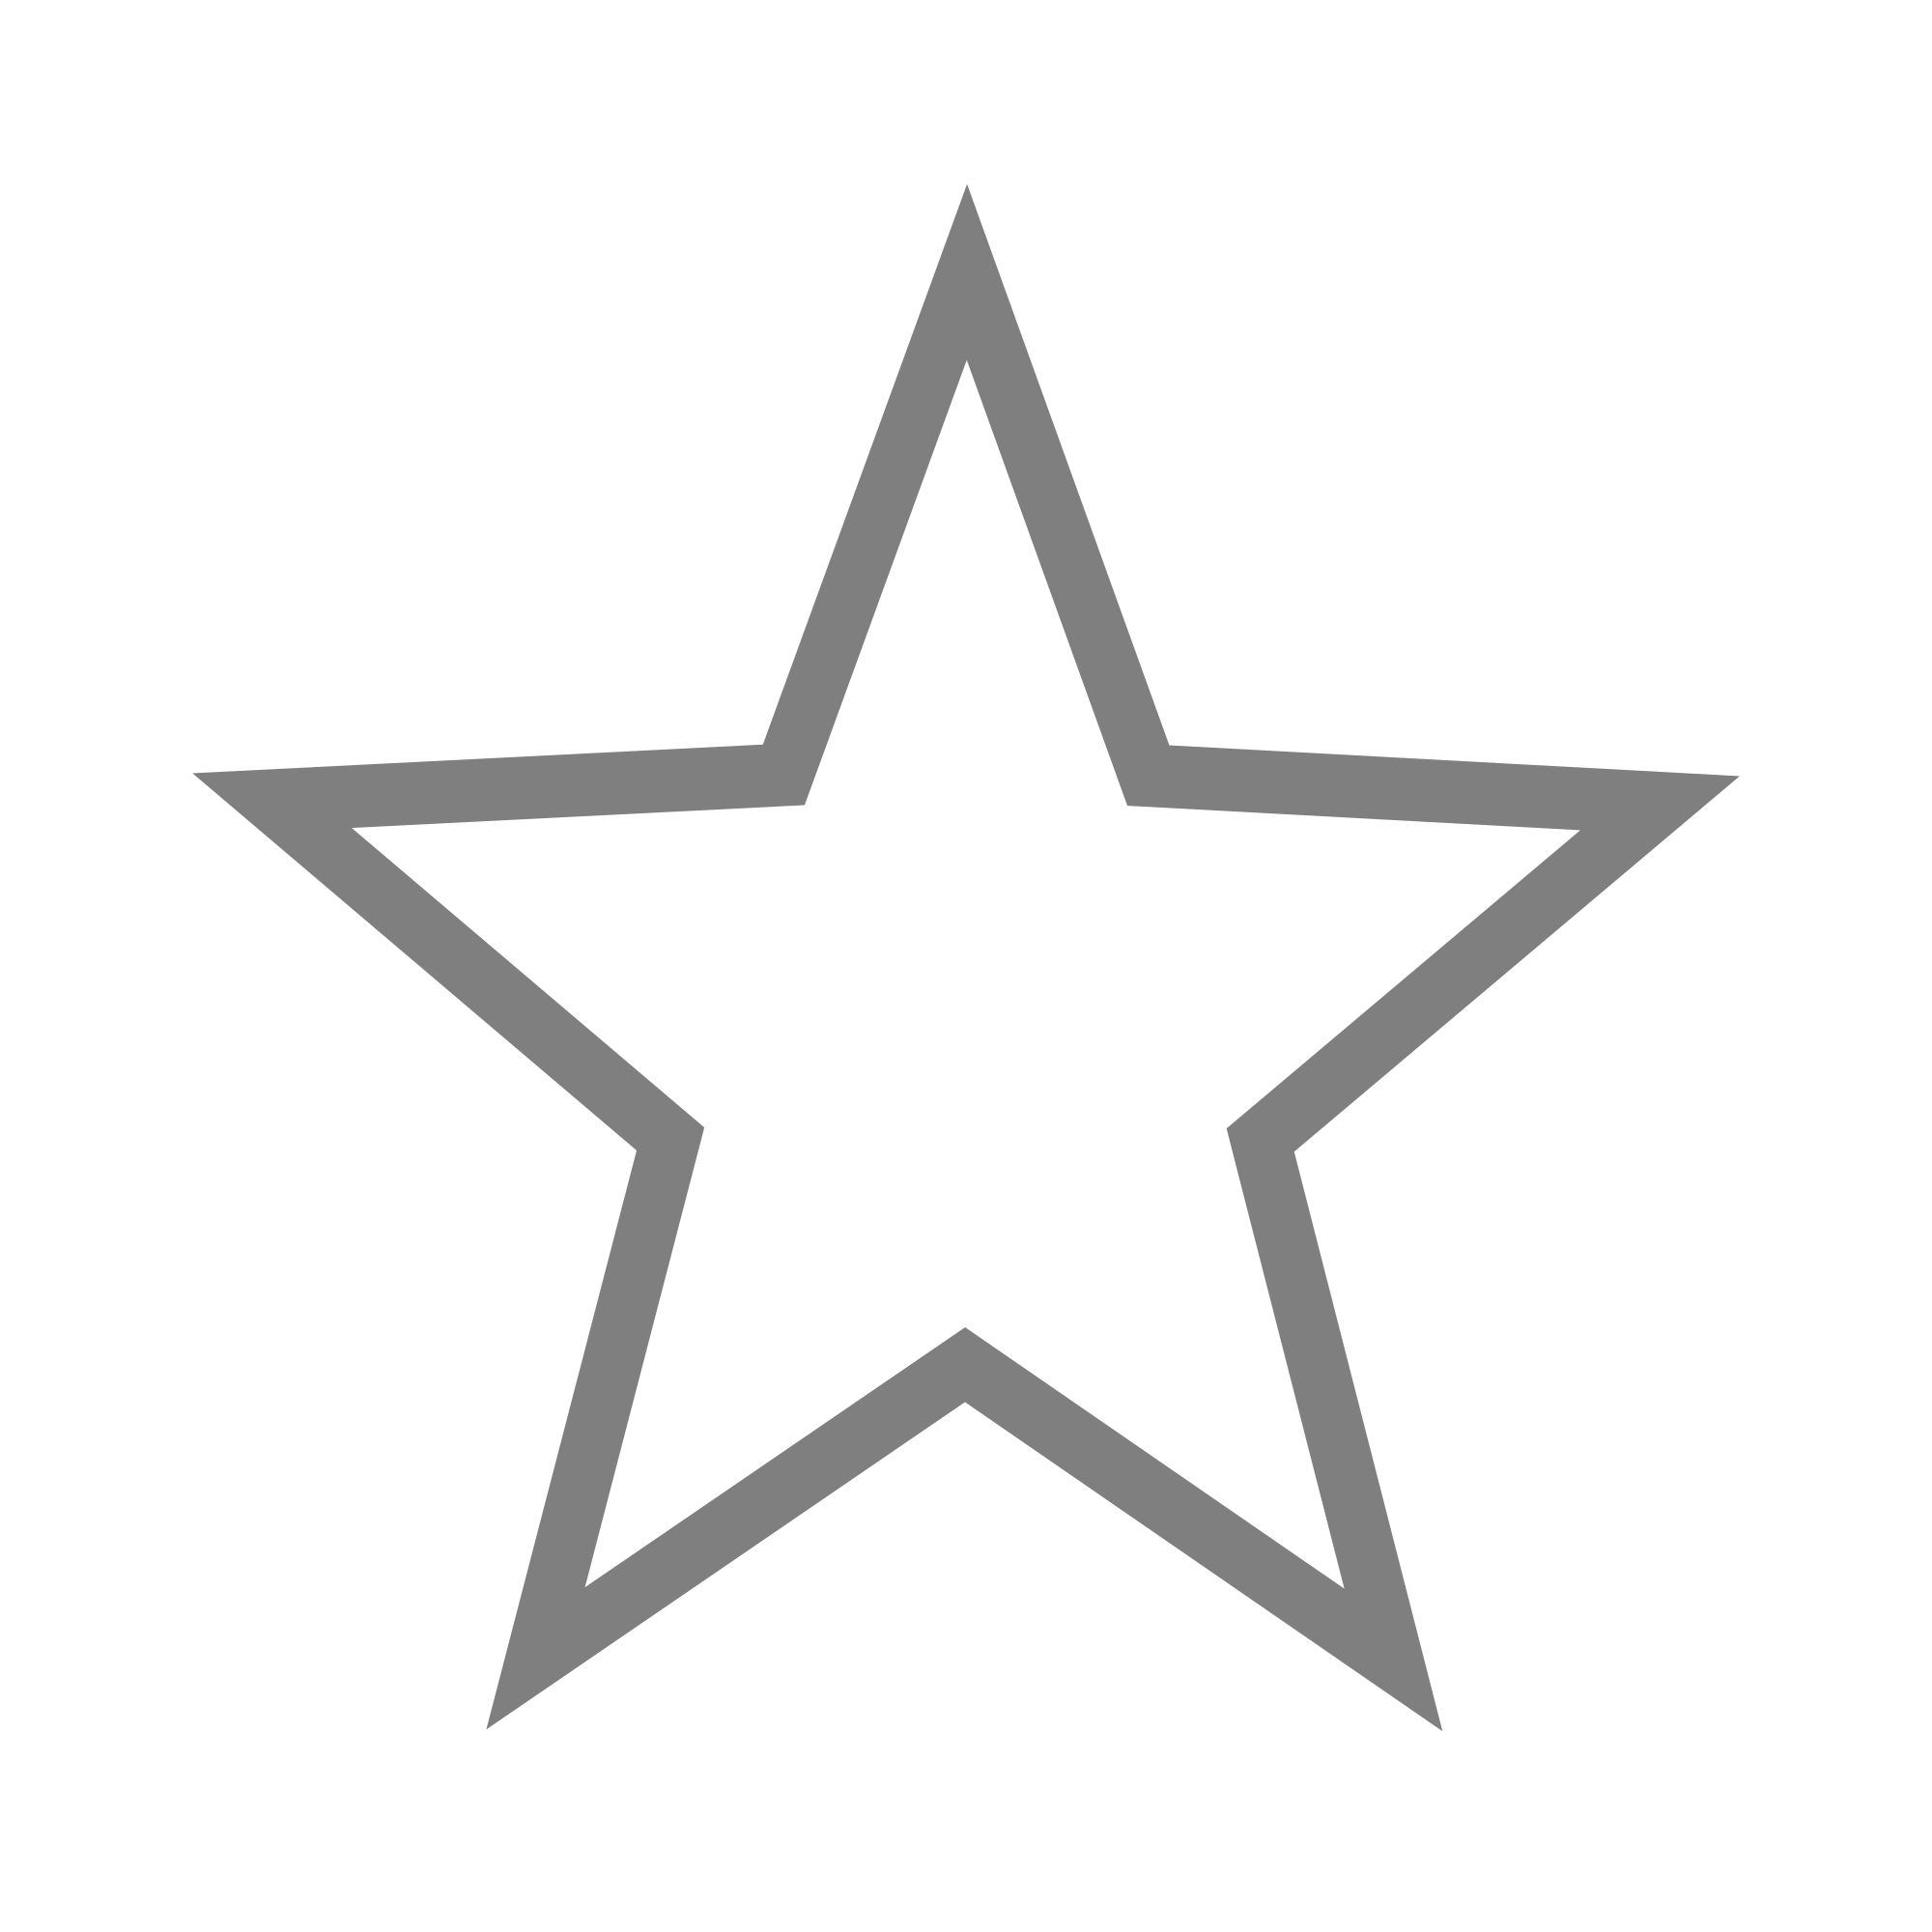 Star images png. File empty svg wikimedia